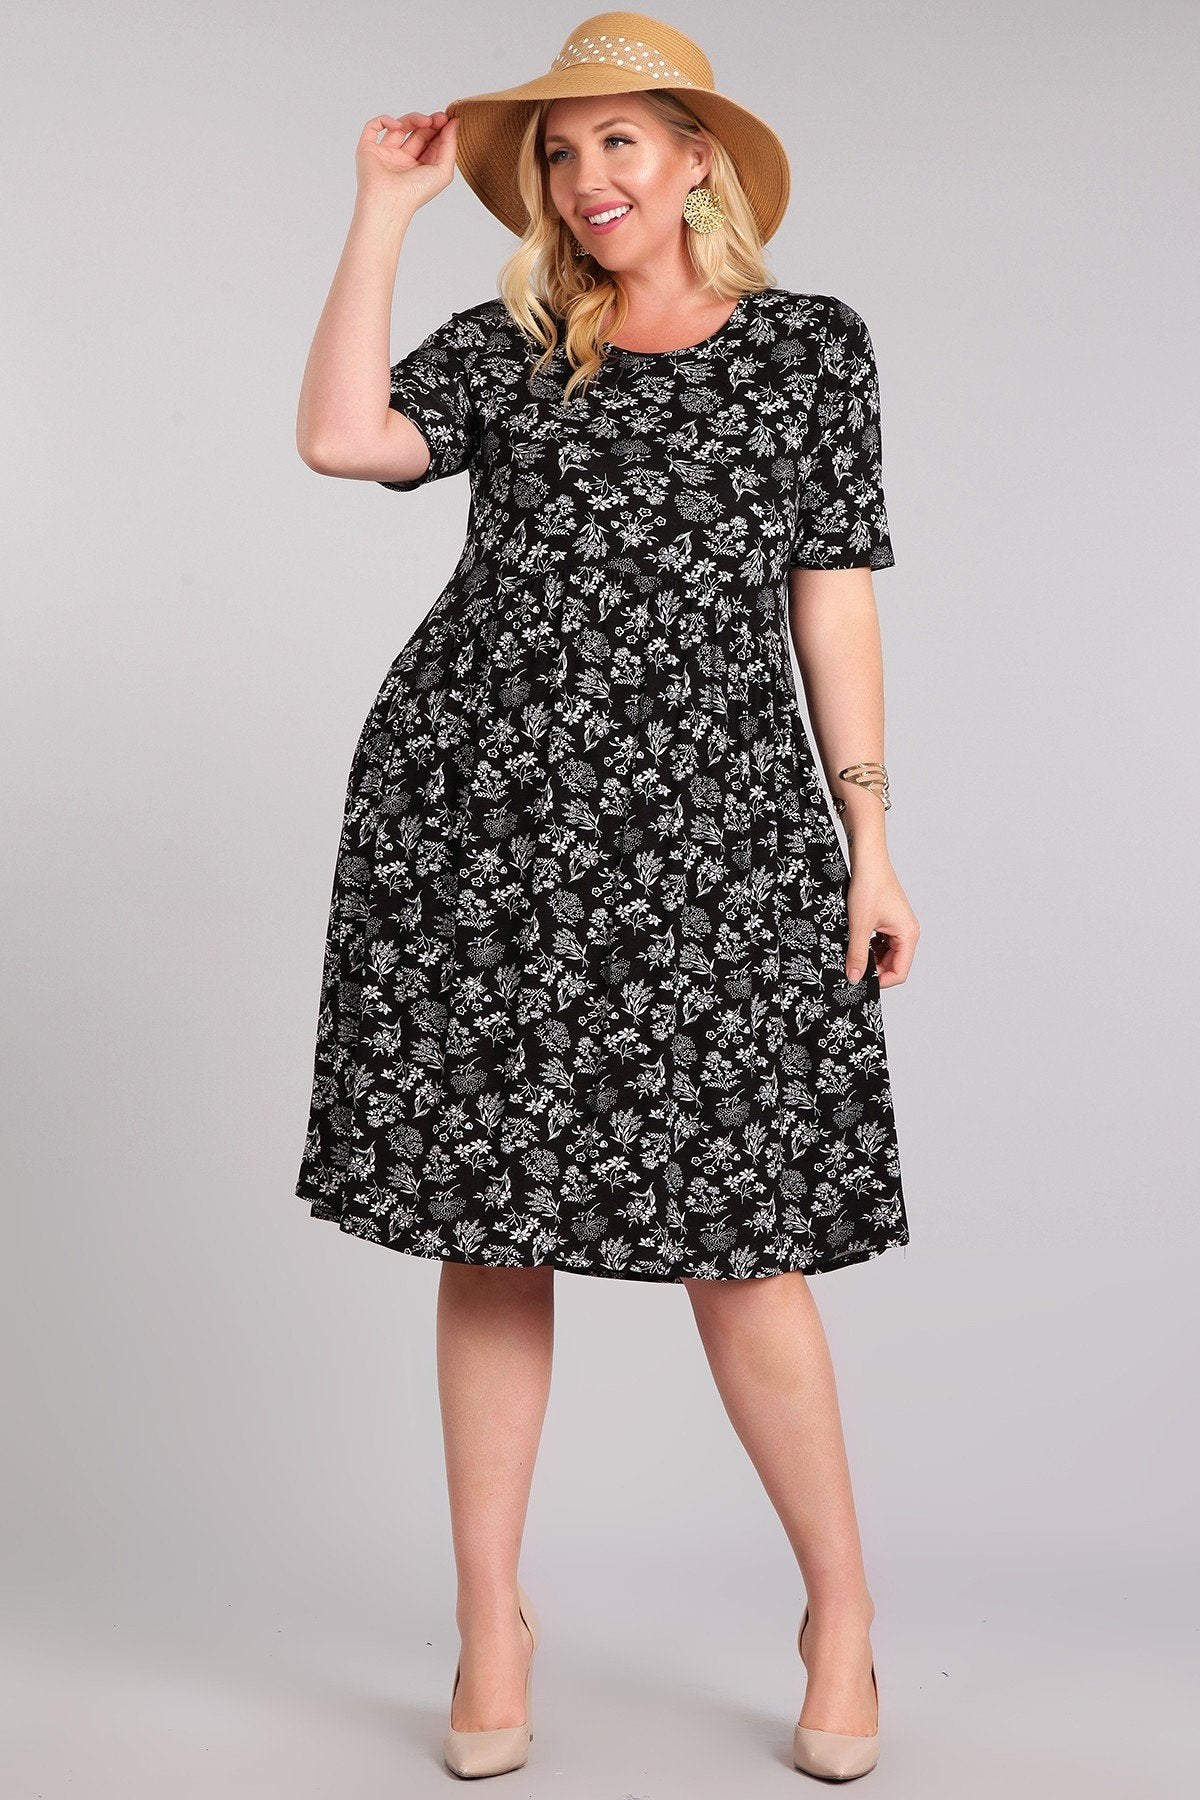 Jocelyn Black Dress